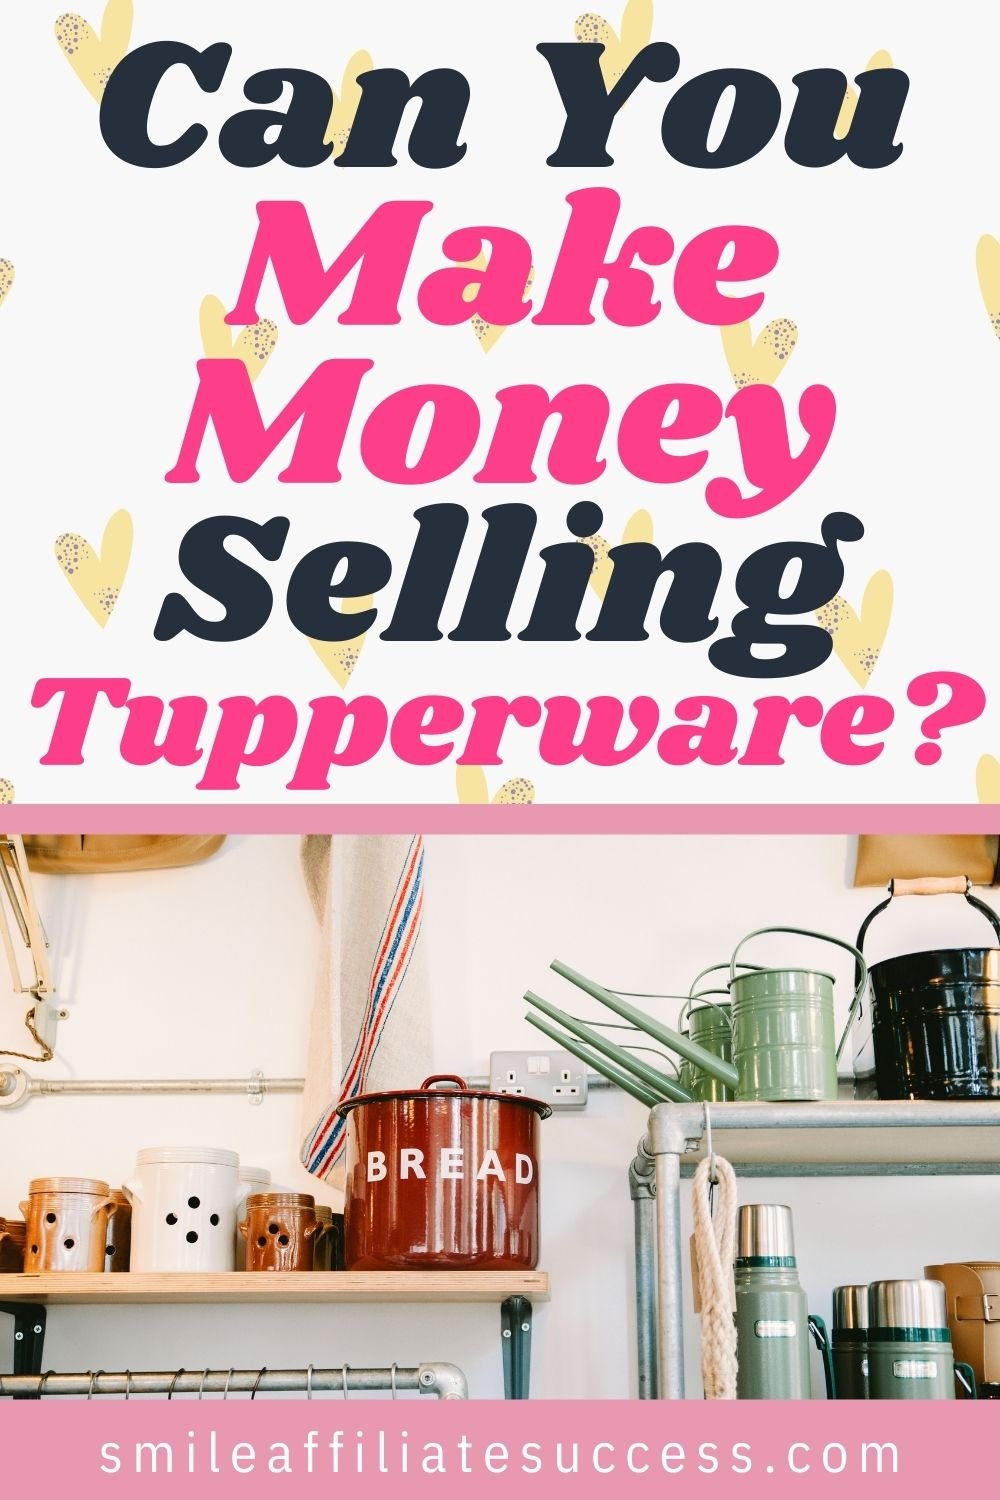 Can You Make Money Selling Tupperware?